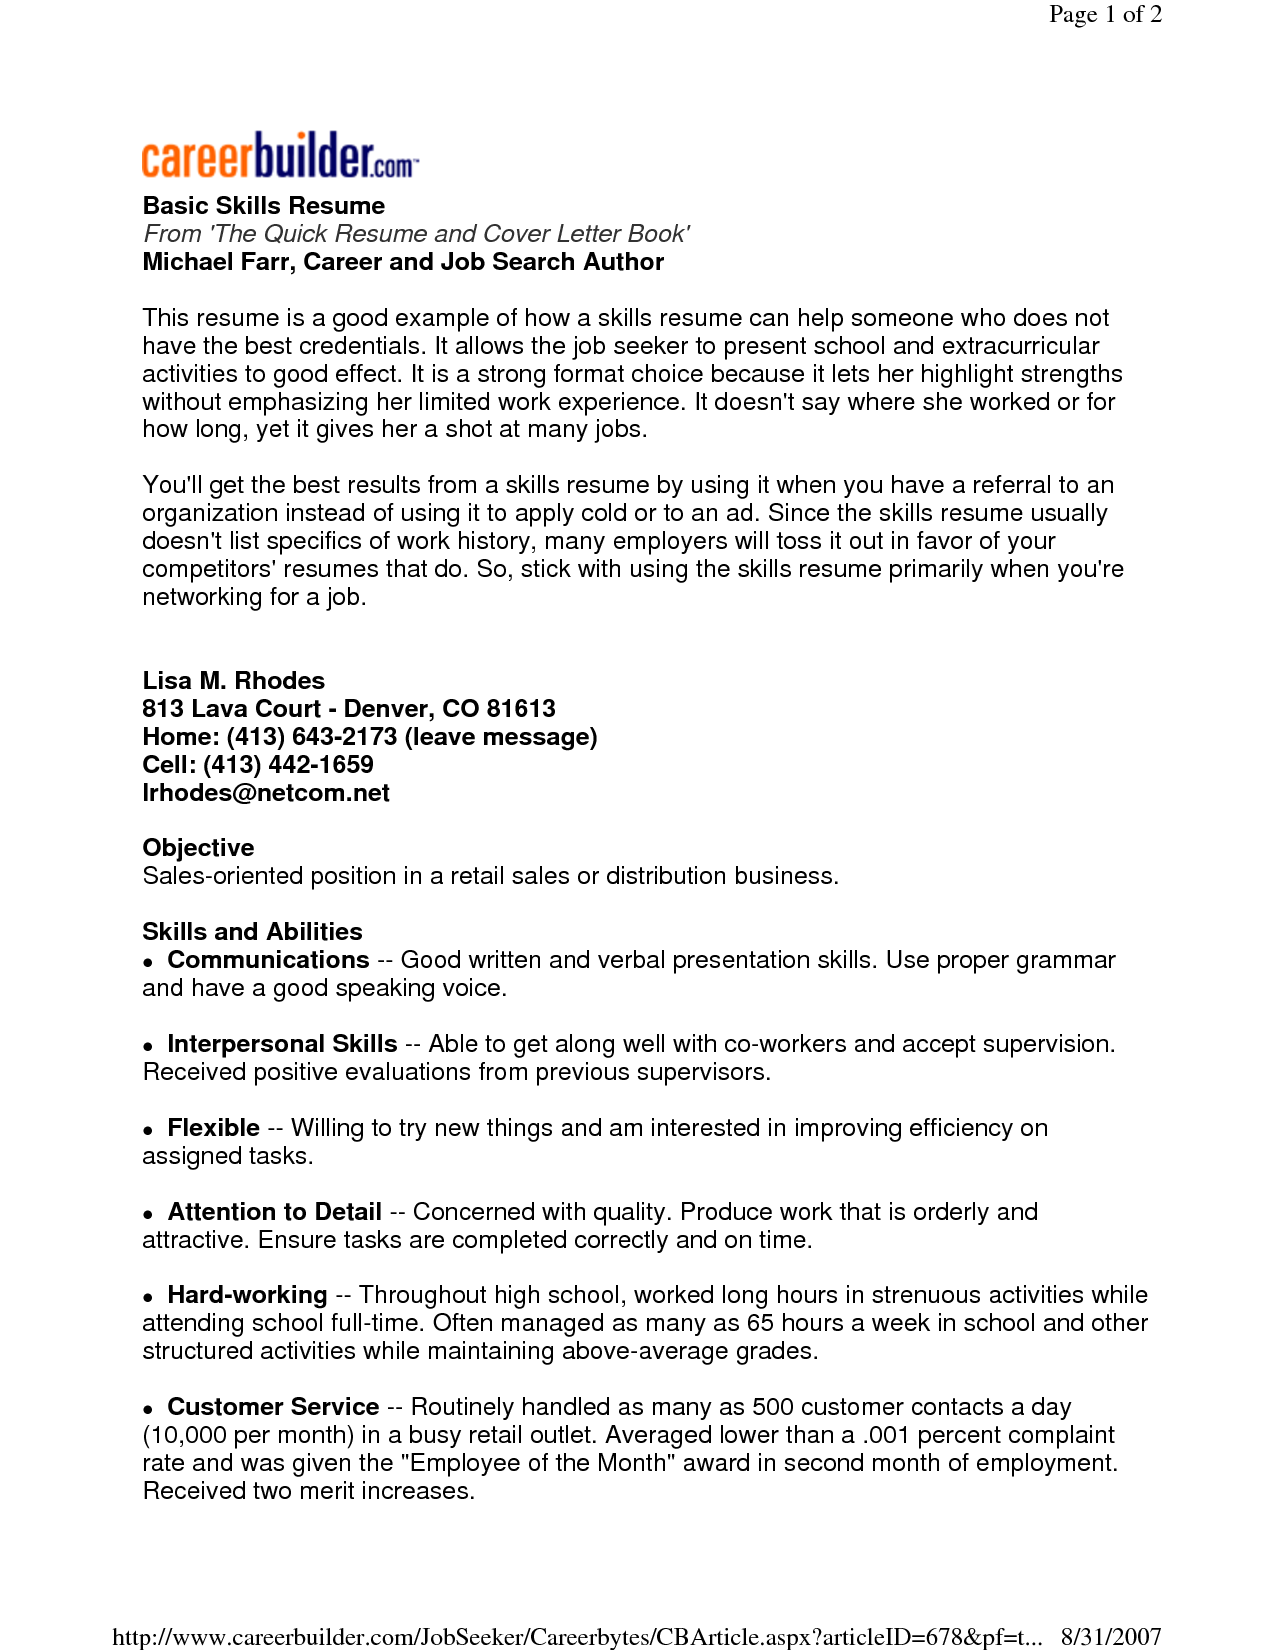 list of computer applications for resume